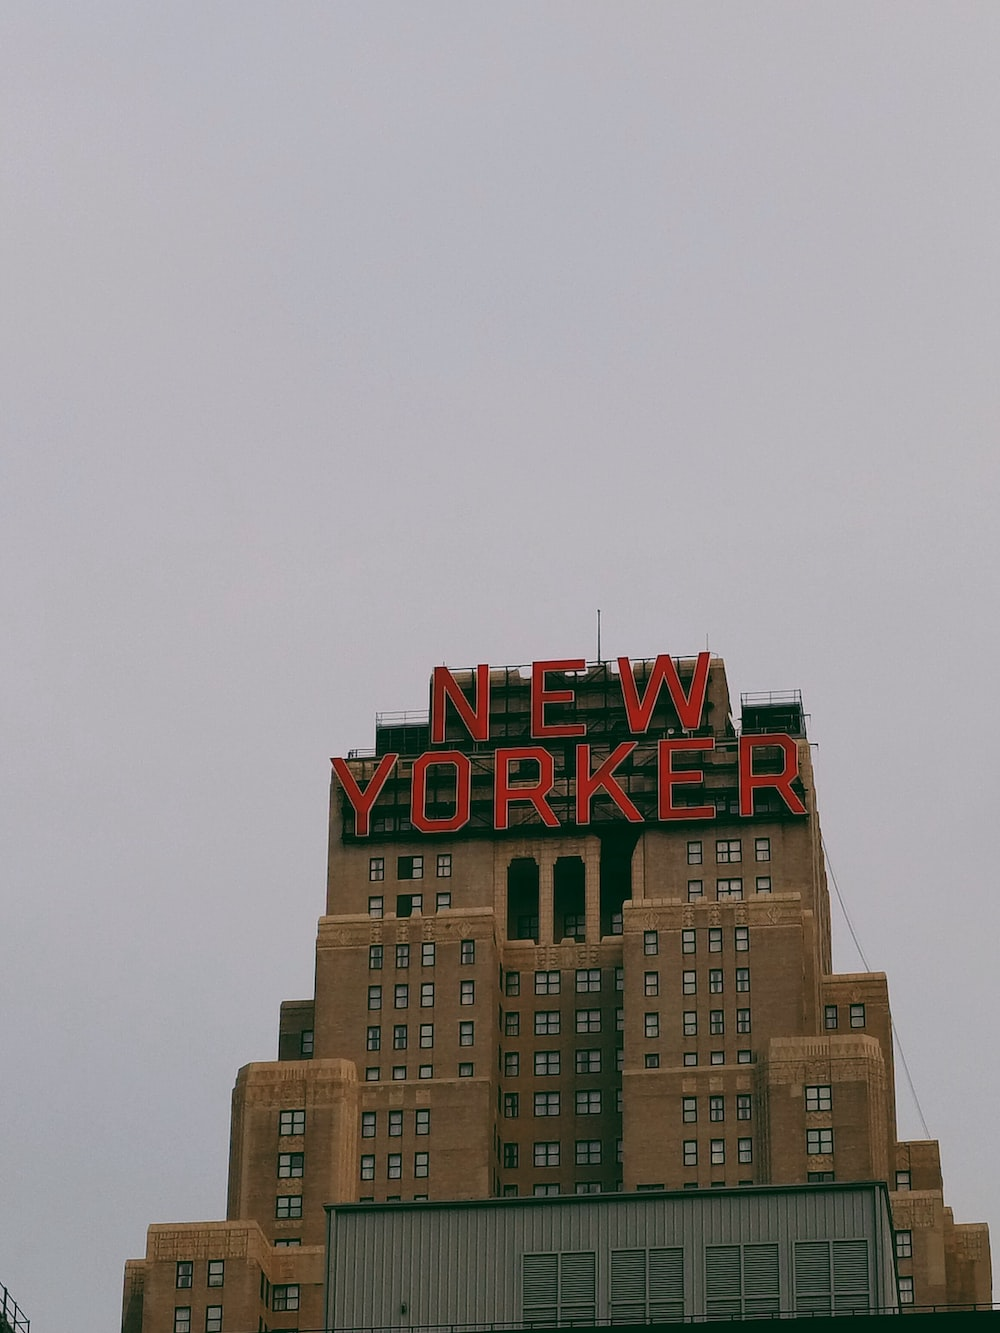 New Yorker Tower